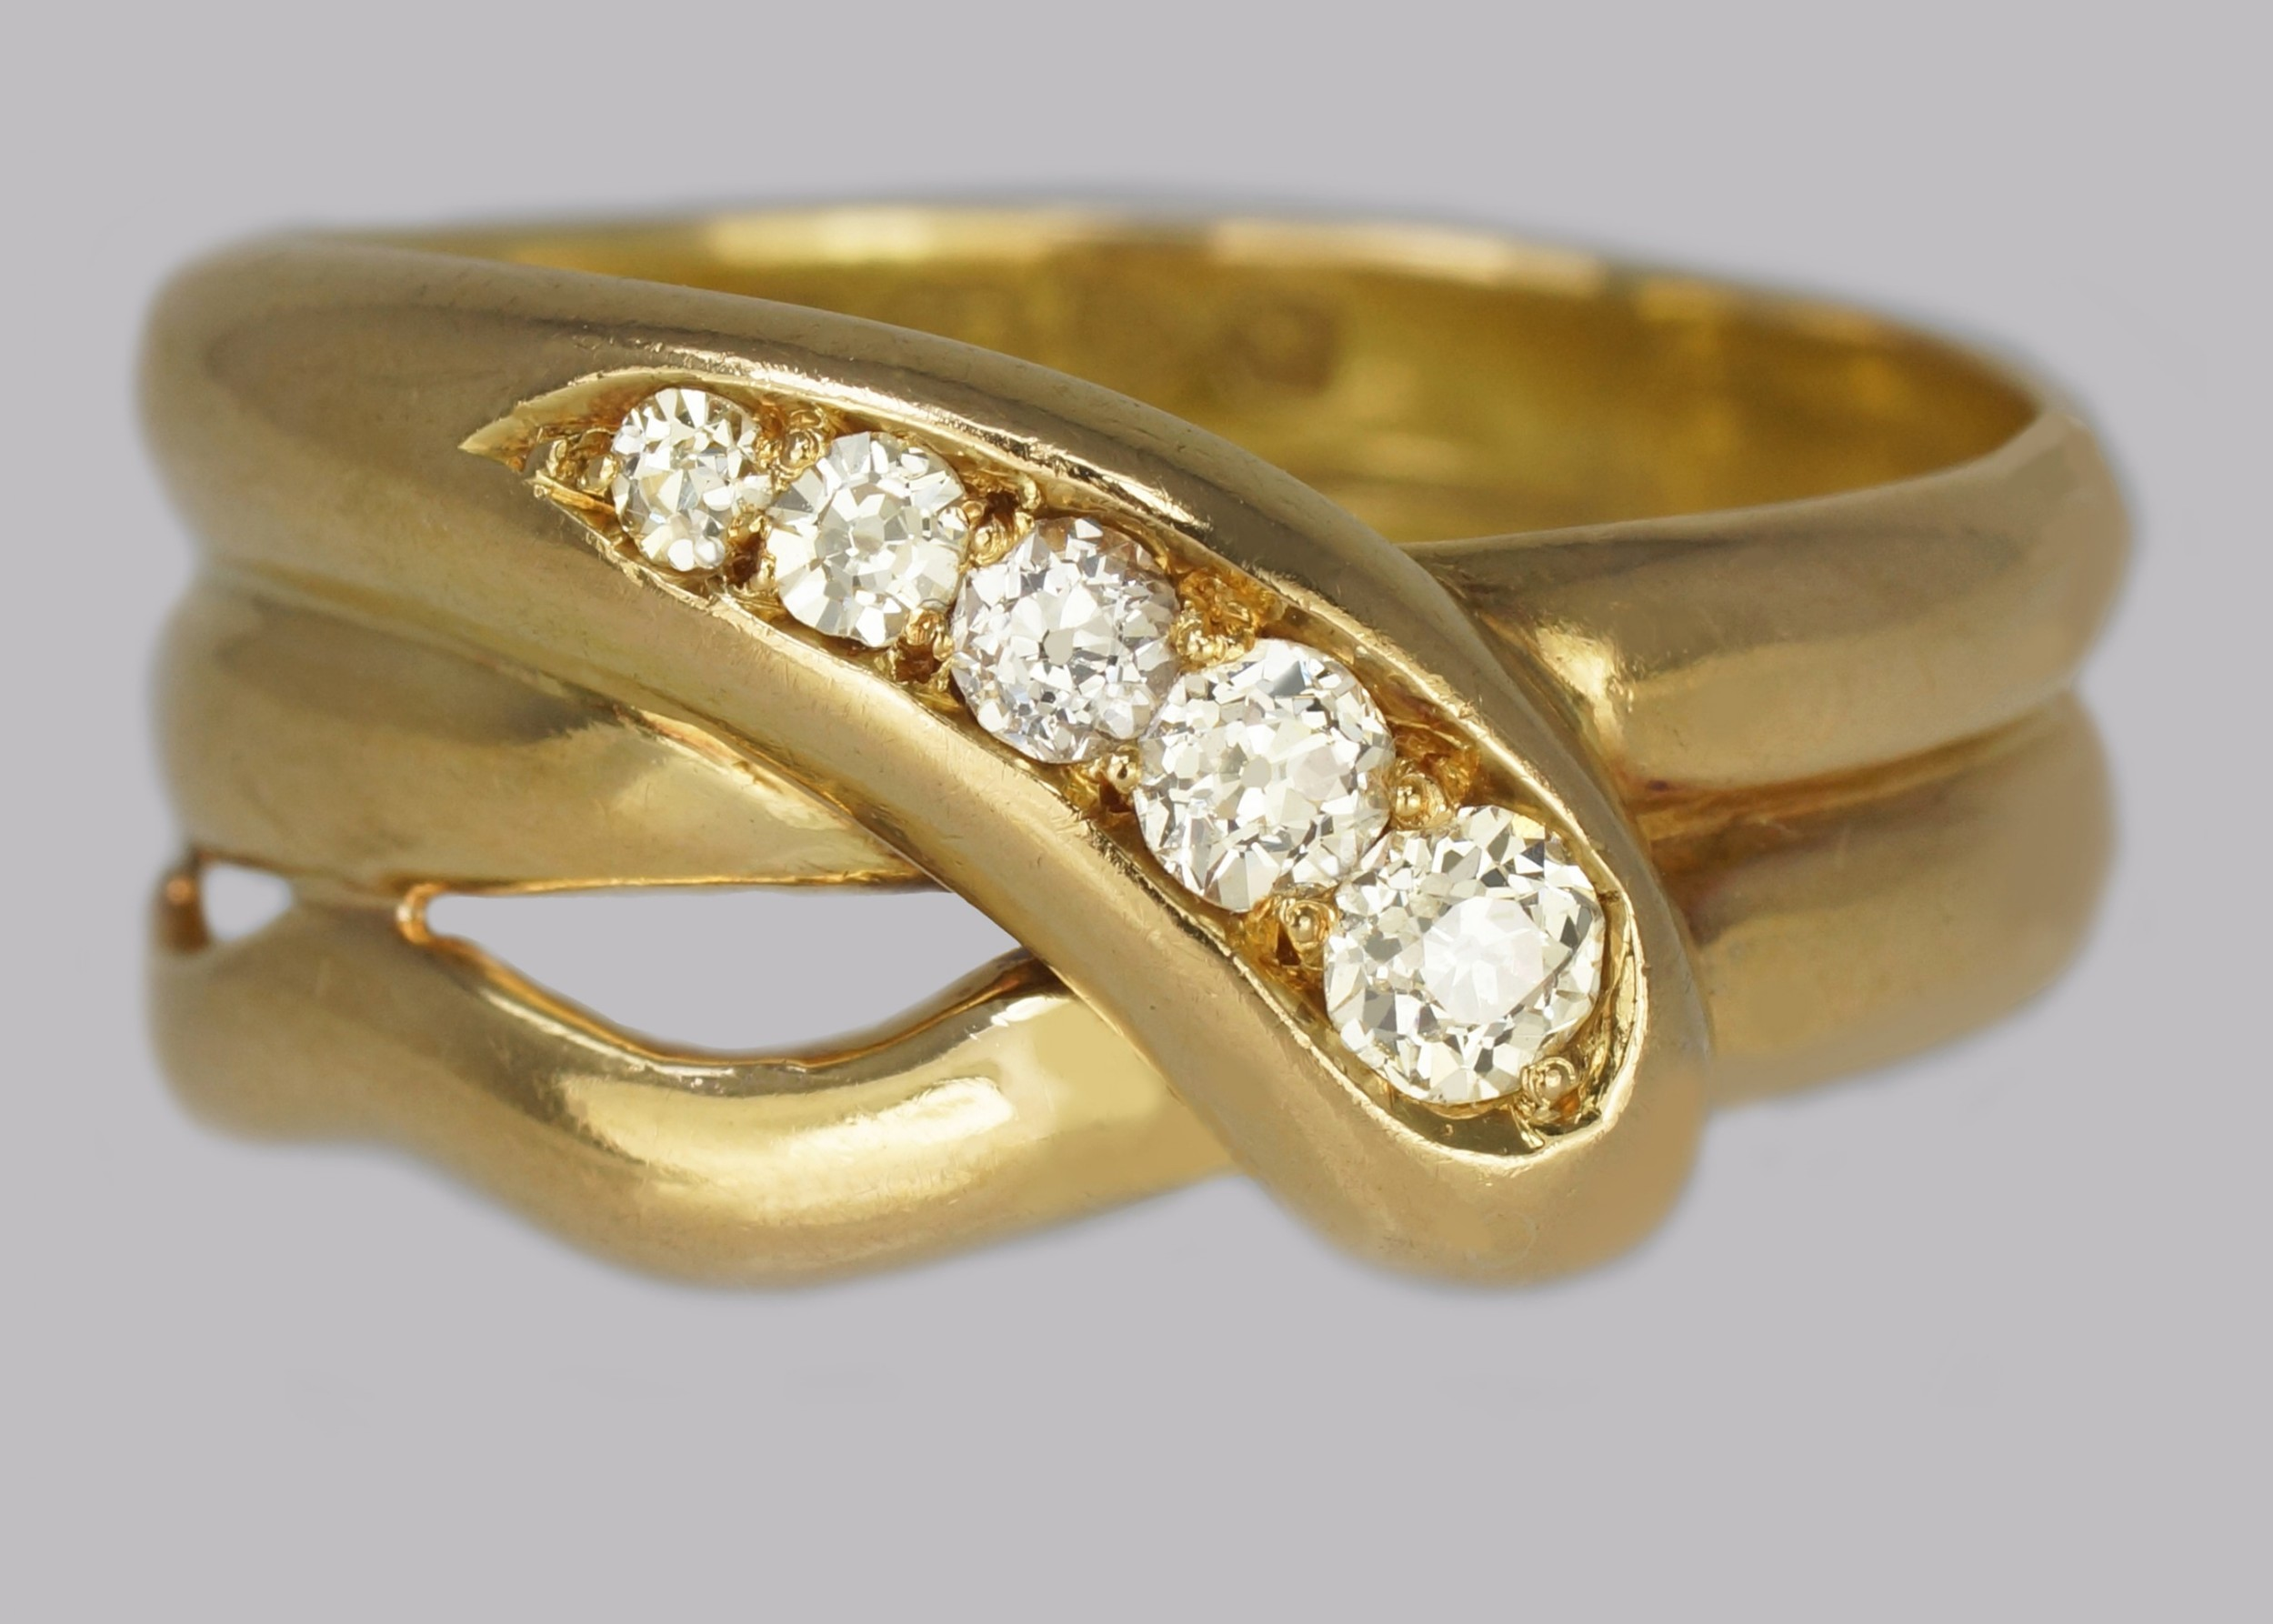 victorian diamond snake ring 18ct gold antique coiled serpent ring chester 1896